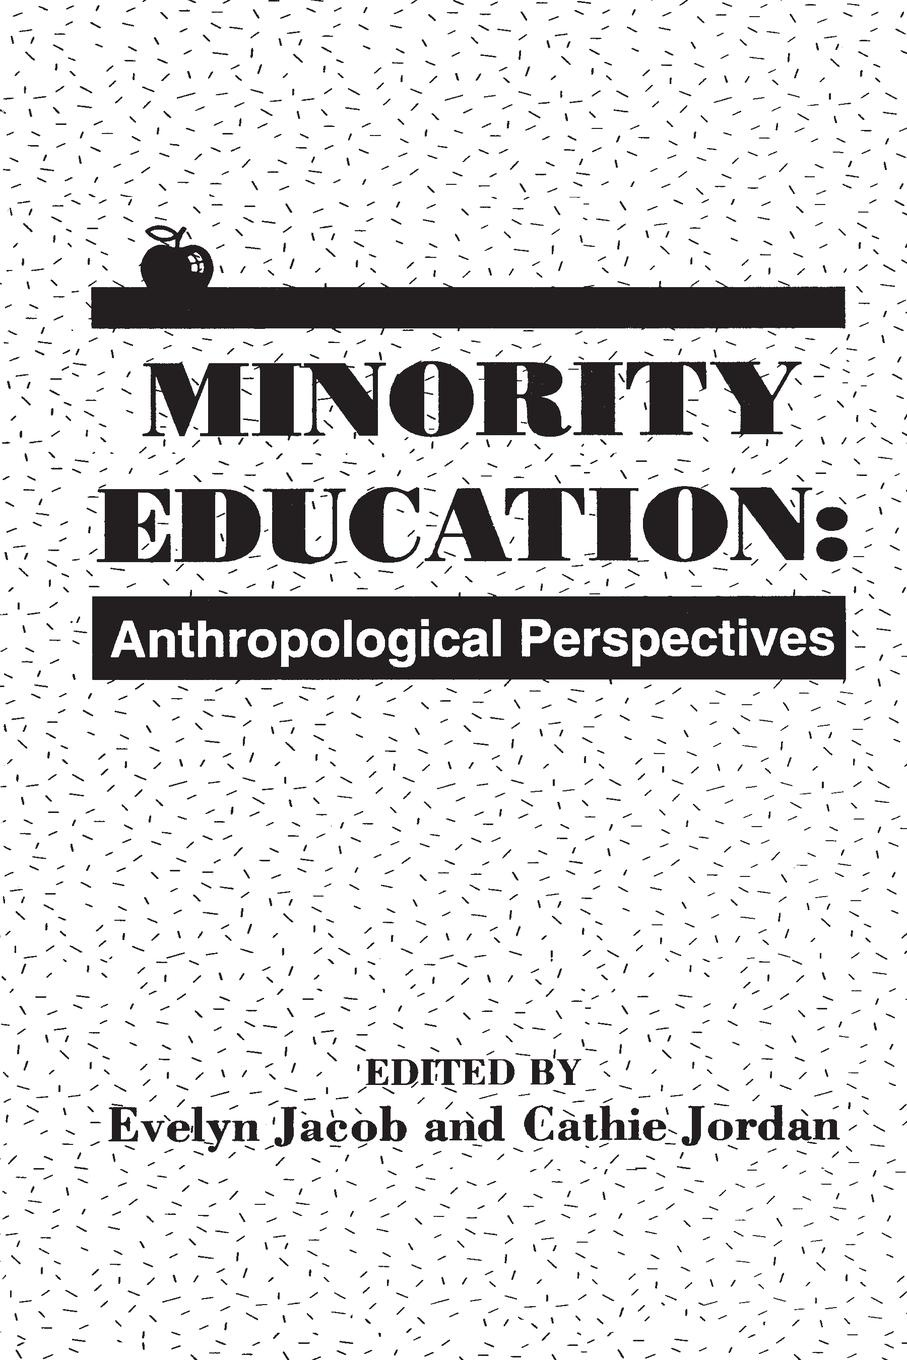 Evelyn Jacob, Cathie Jordan Minority Education. Anthropological Perspectives roland m schulz rethinking science education philosophical perspectives